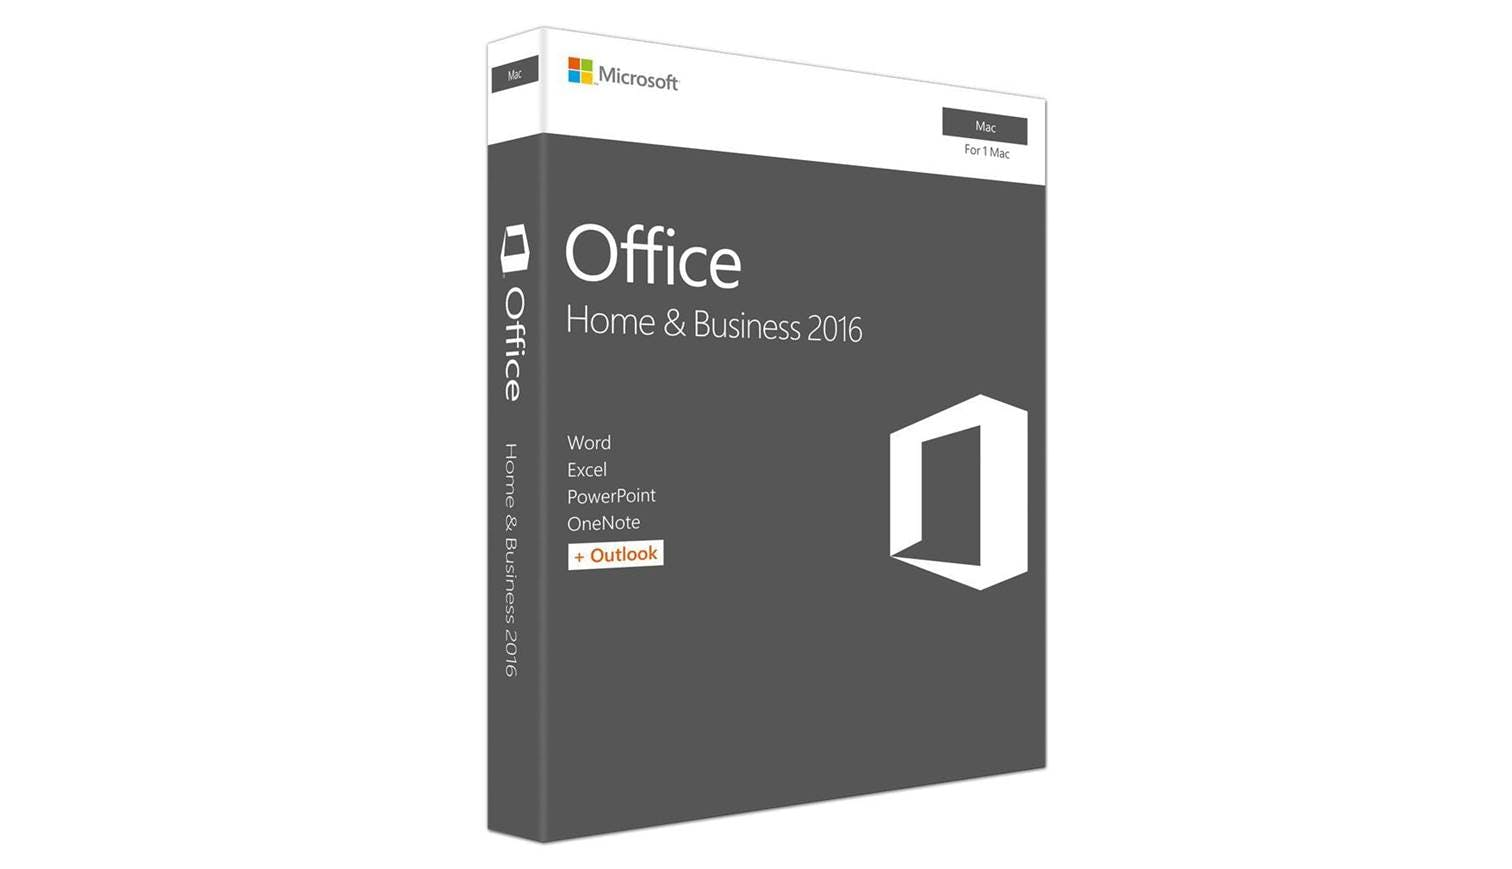 office 2016 home and business vs home and student